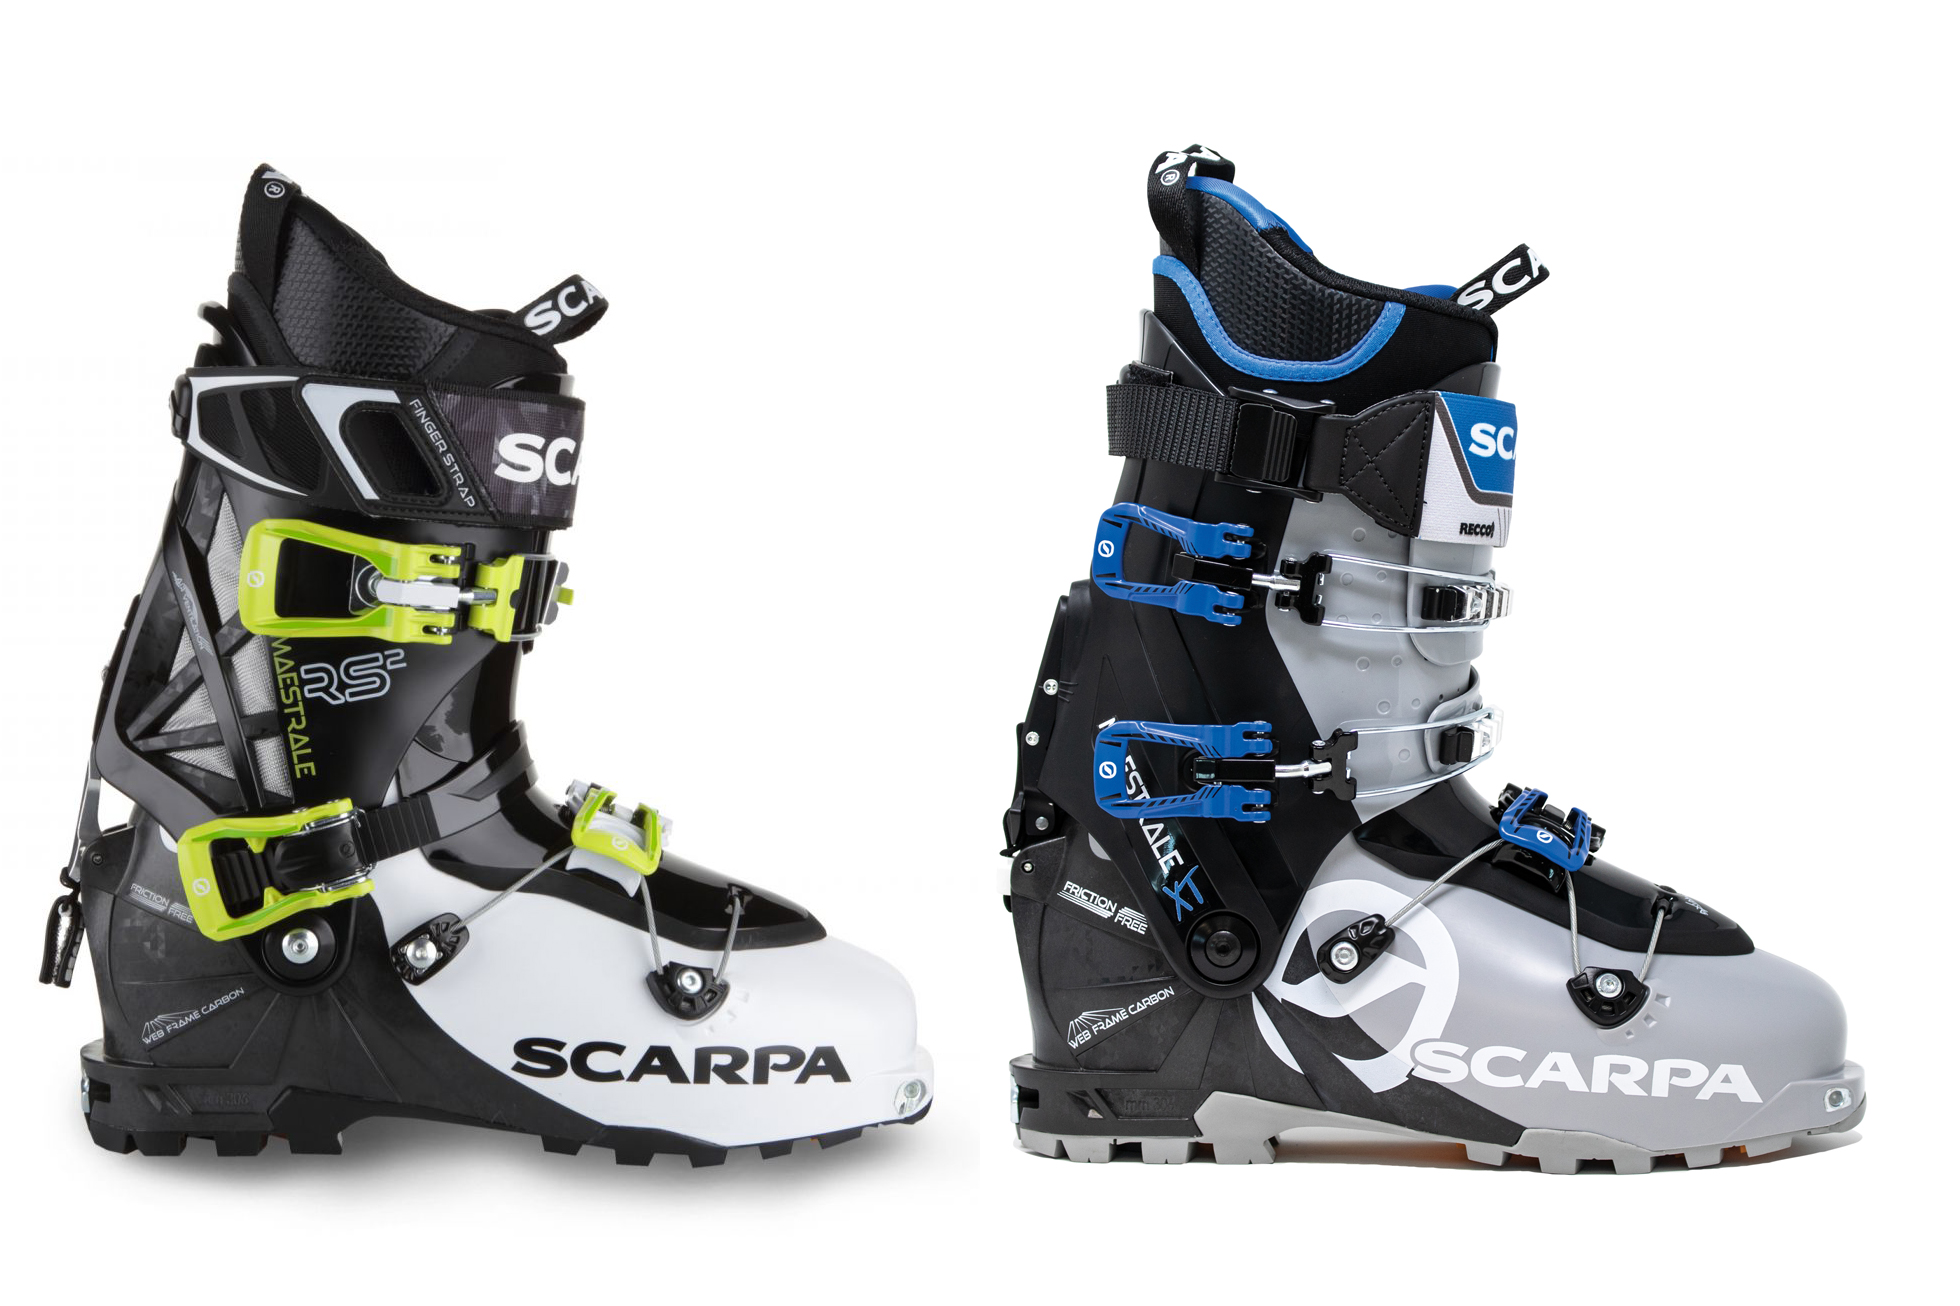 World's Most Popular Ski Touring Boot Is About to Get More